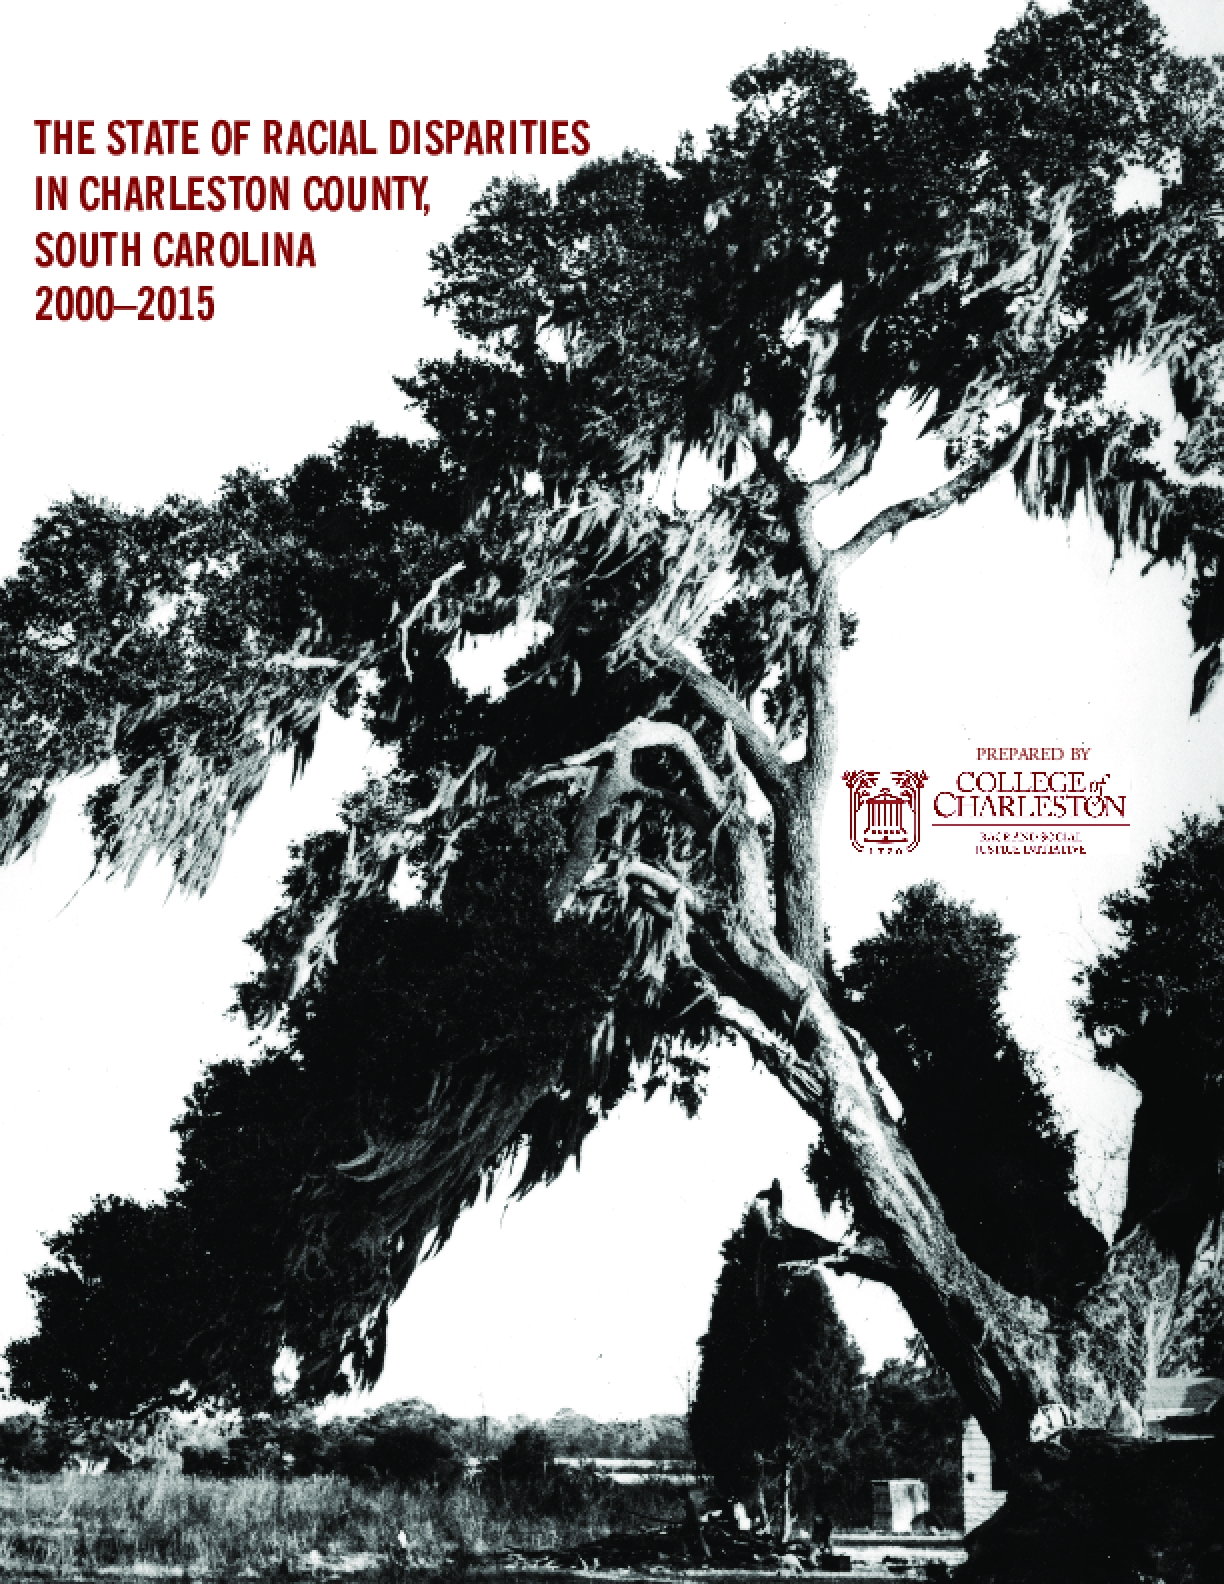 The State of Racial Disparities in Charleston County, South Carolina 2000-2015